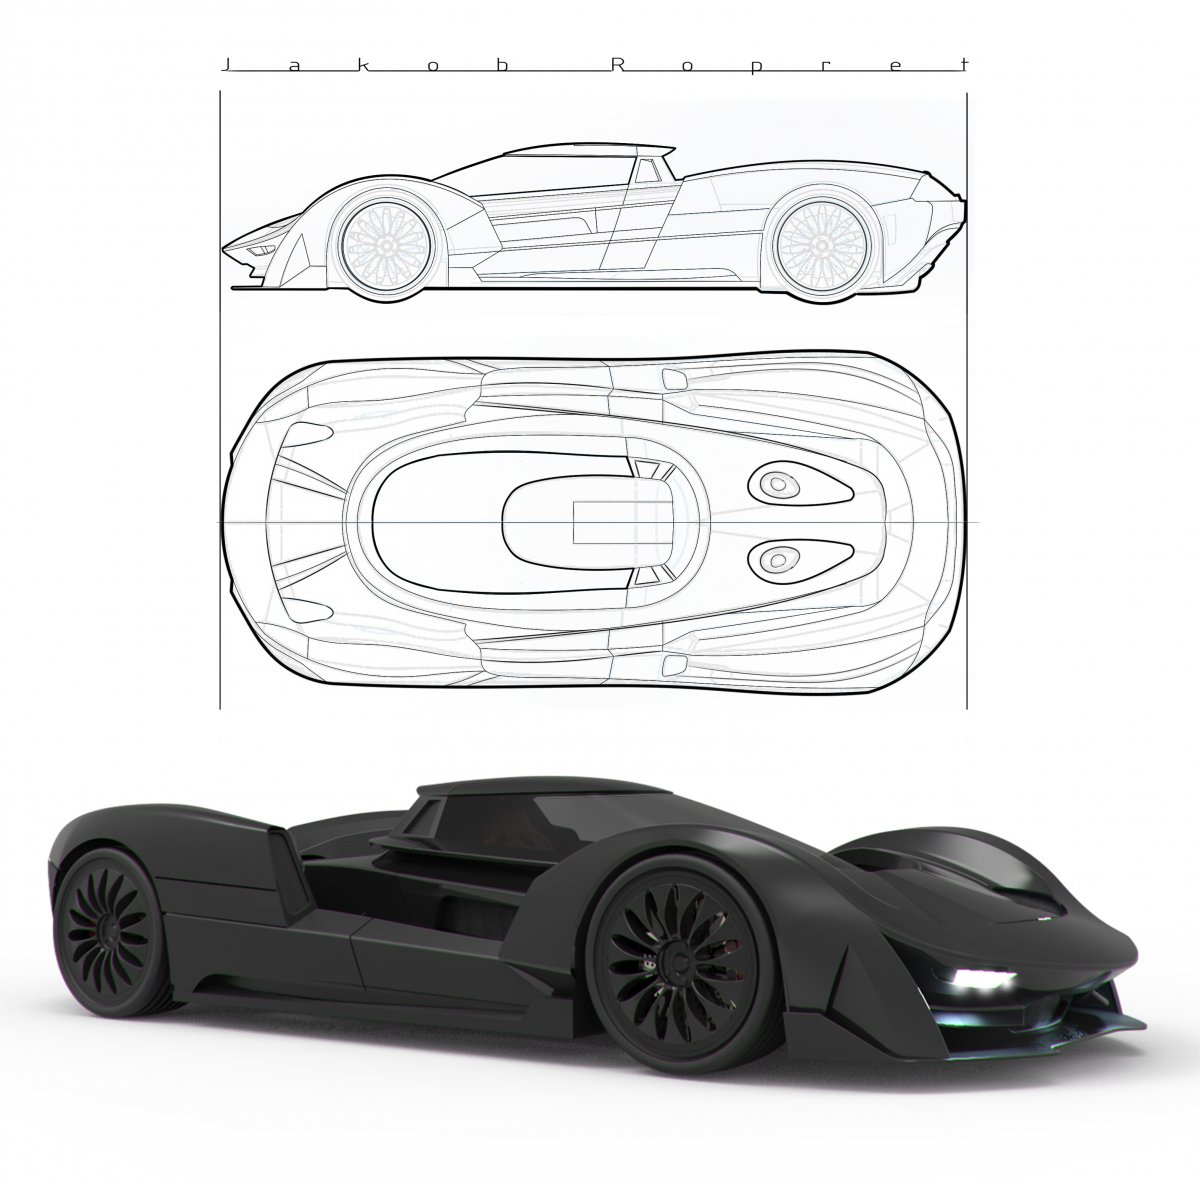 CONCEPT SUPERCAR JR-024